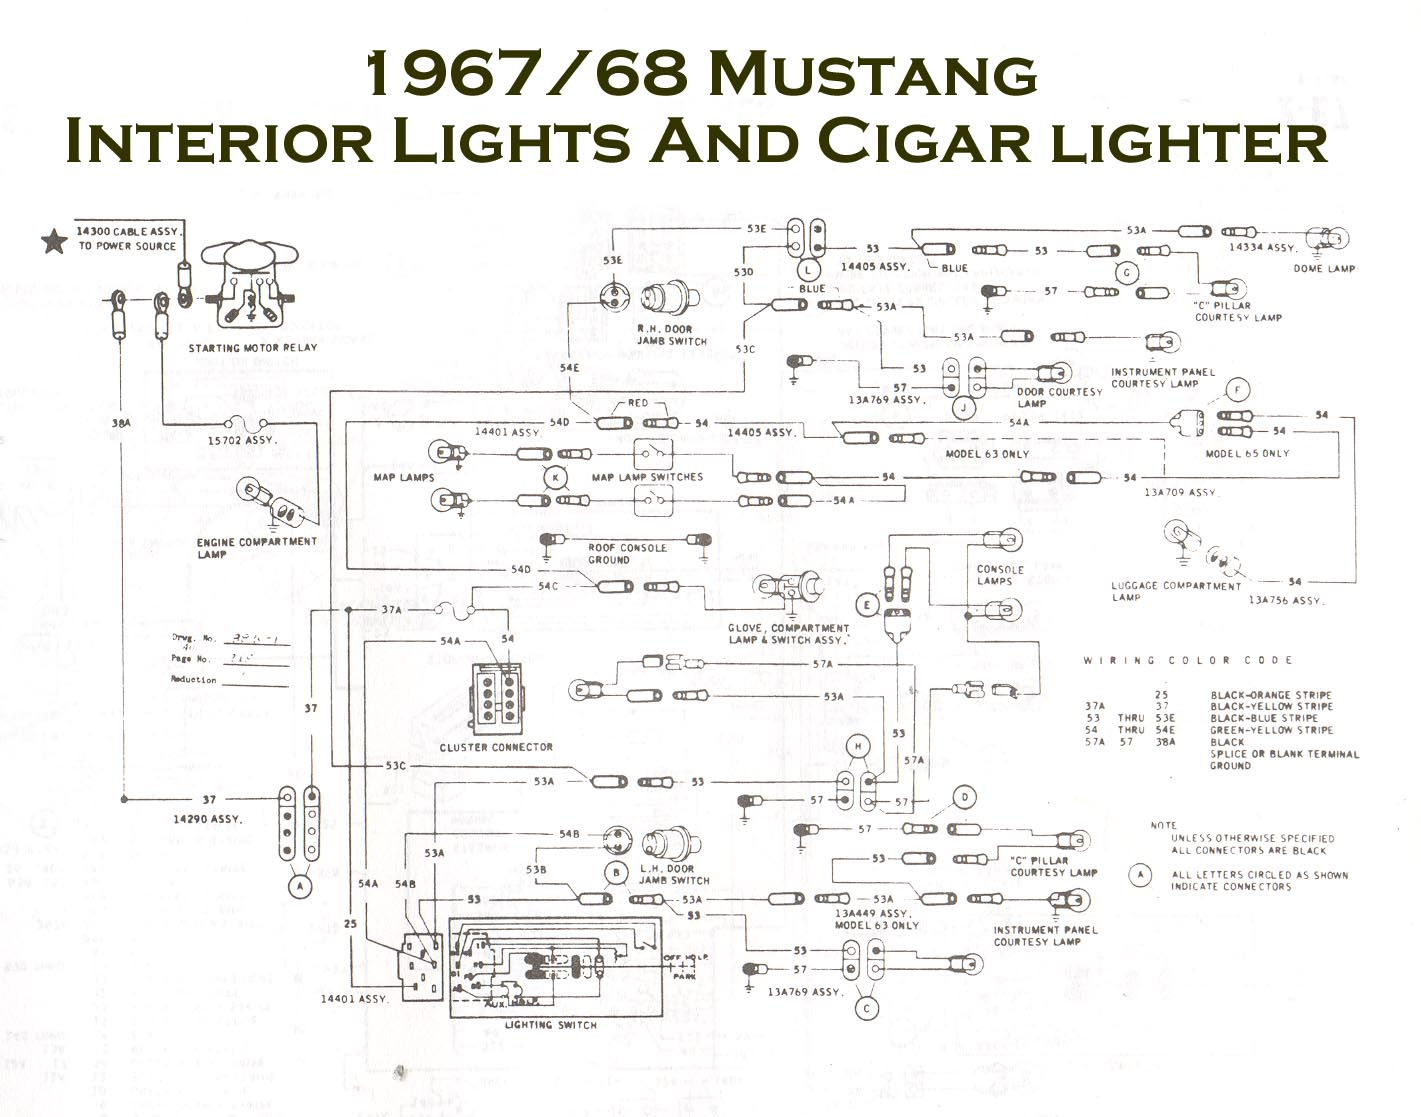 1967 68_console_wiring_diagram vintage mustang wiring diagrams 2004 volvo s40 radio wiring diagram at bakdesigns.co